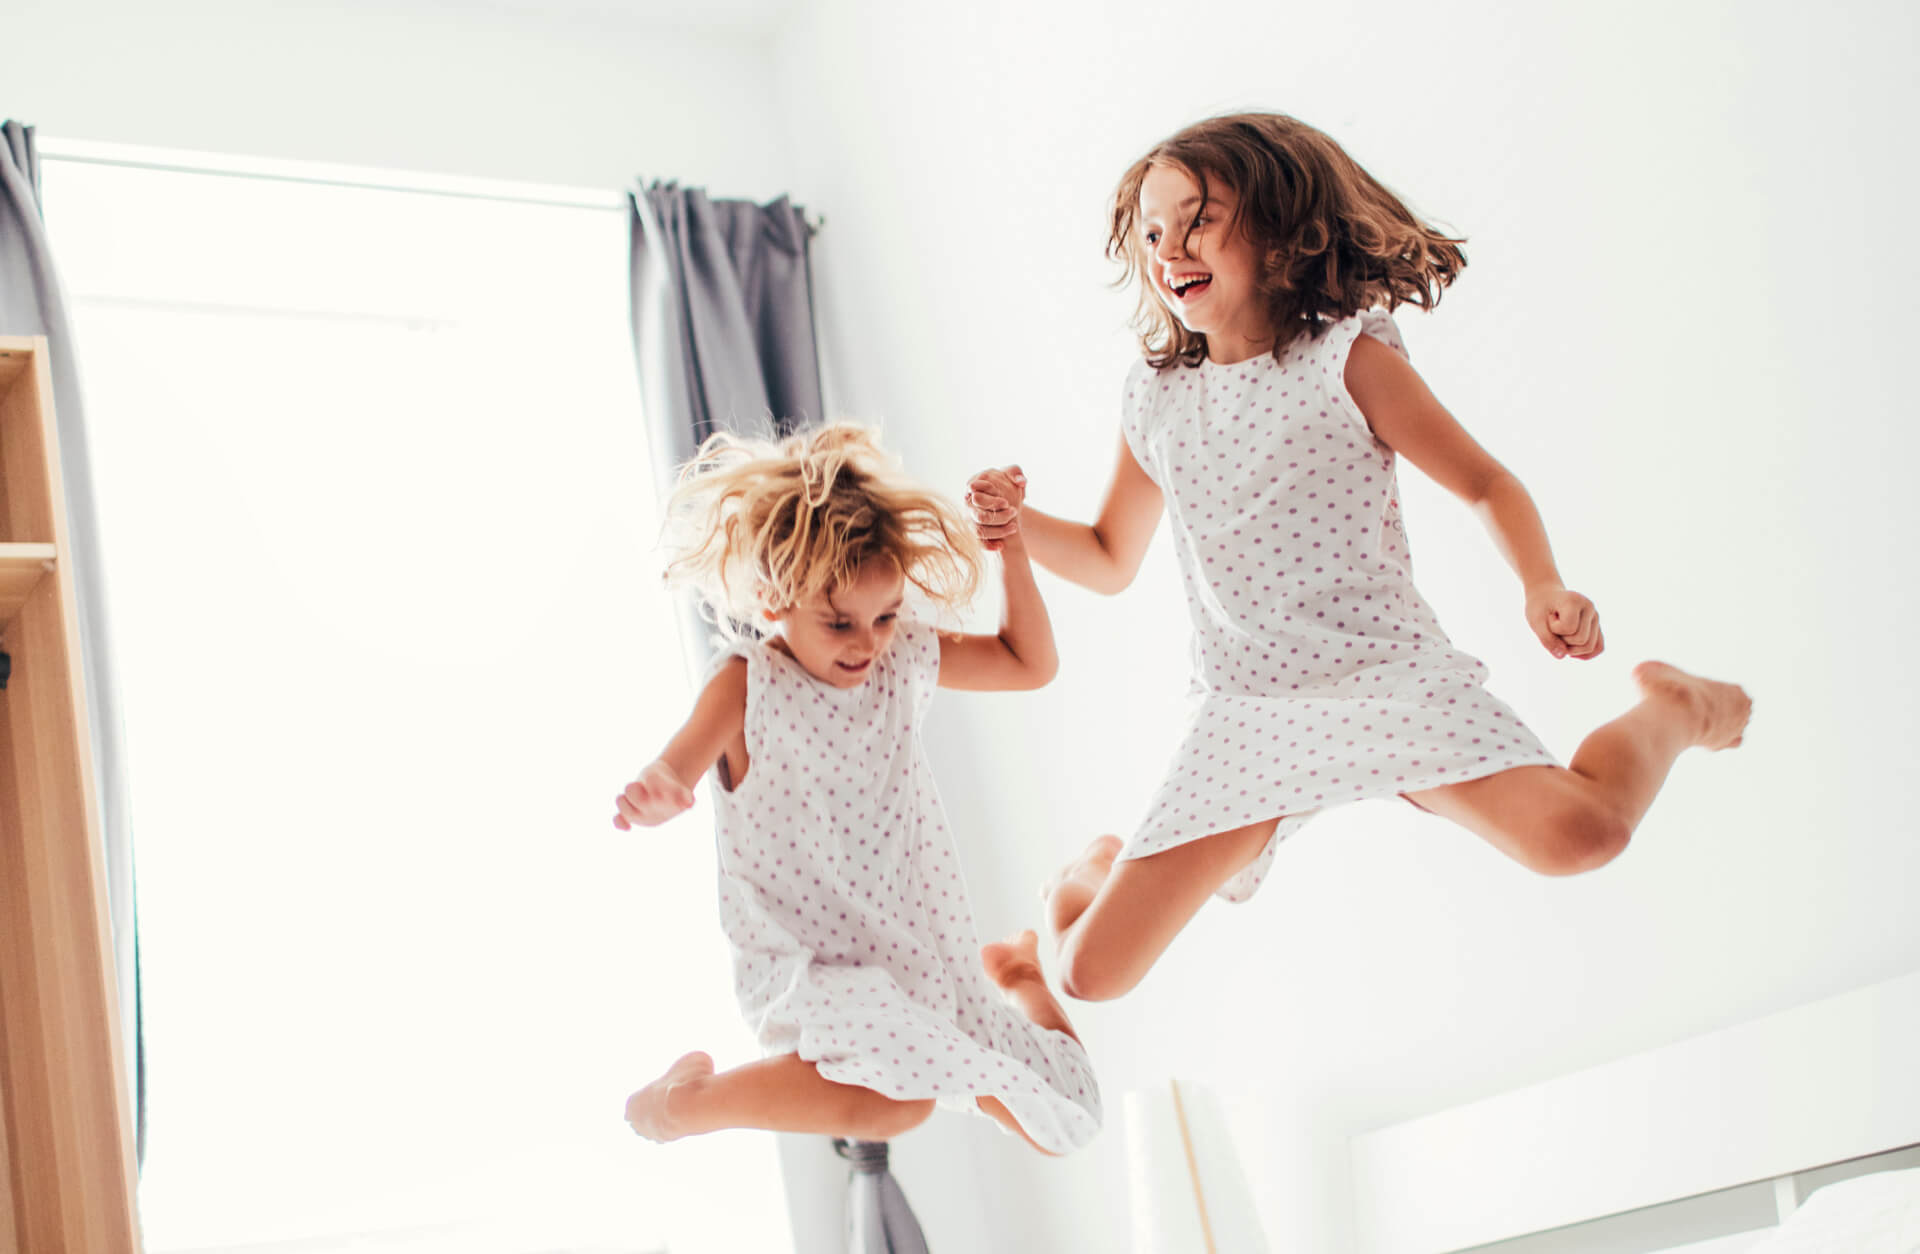 two little girls in dresses jumping on a bed and smiling